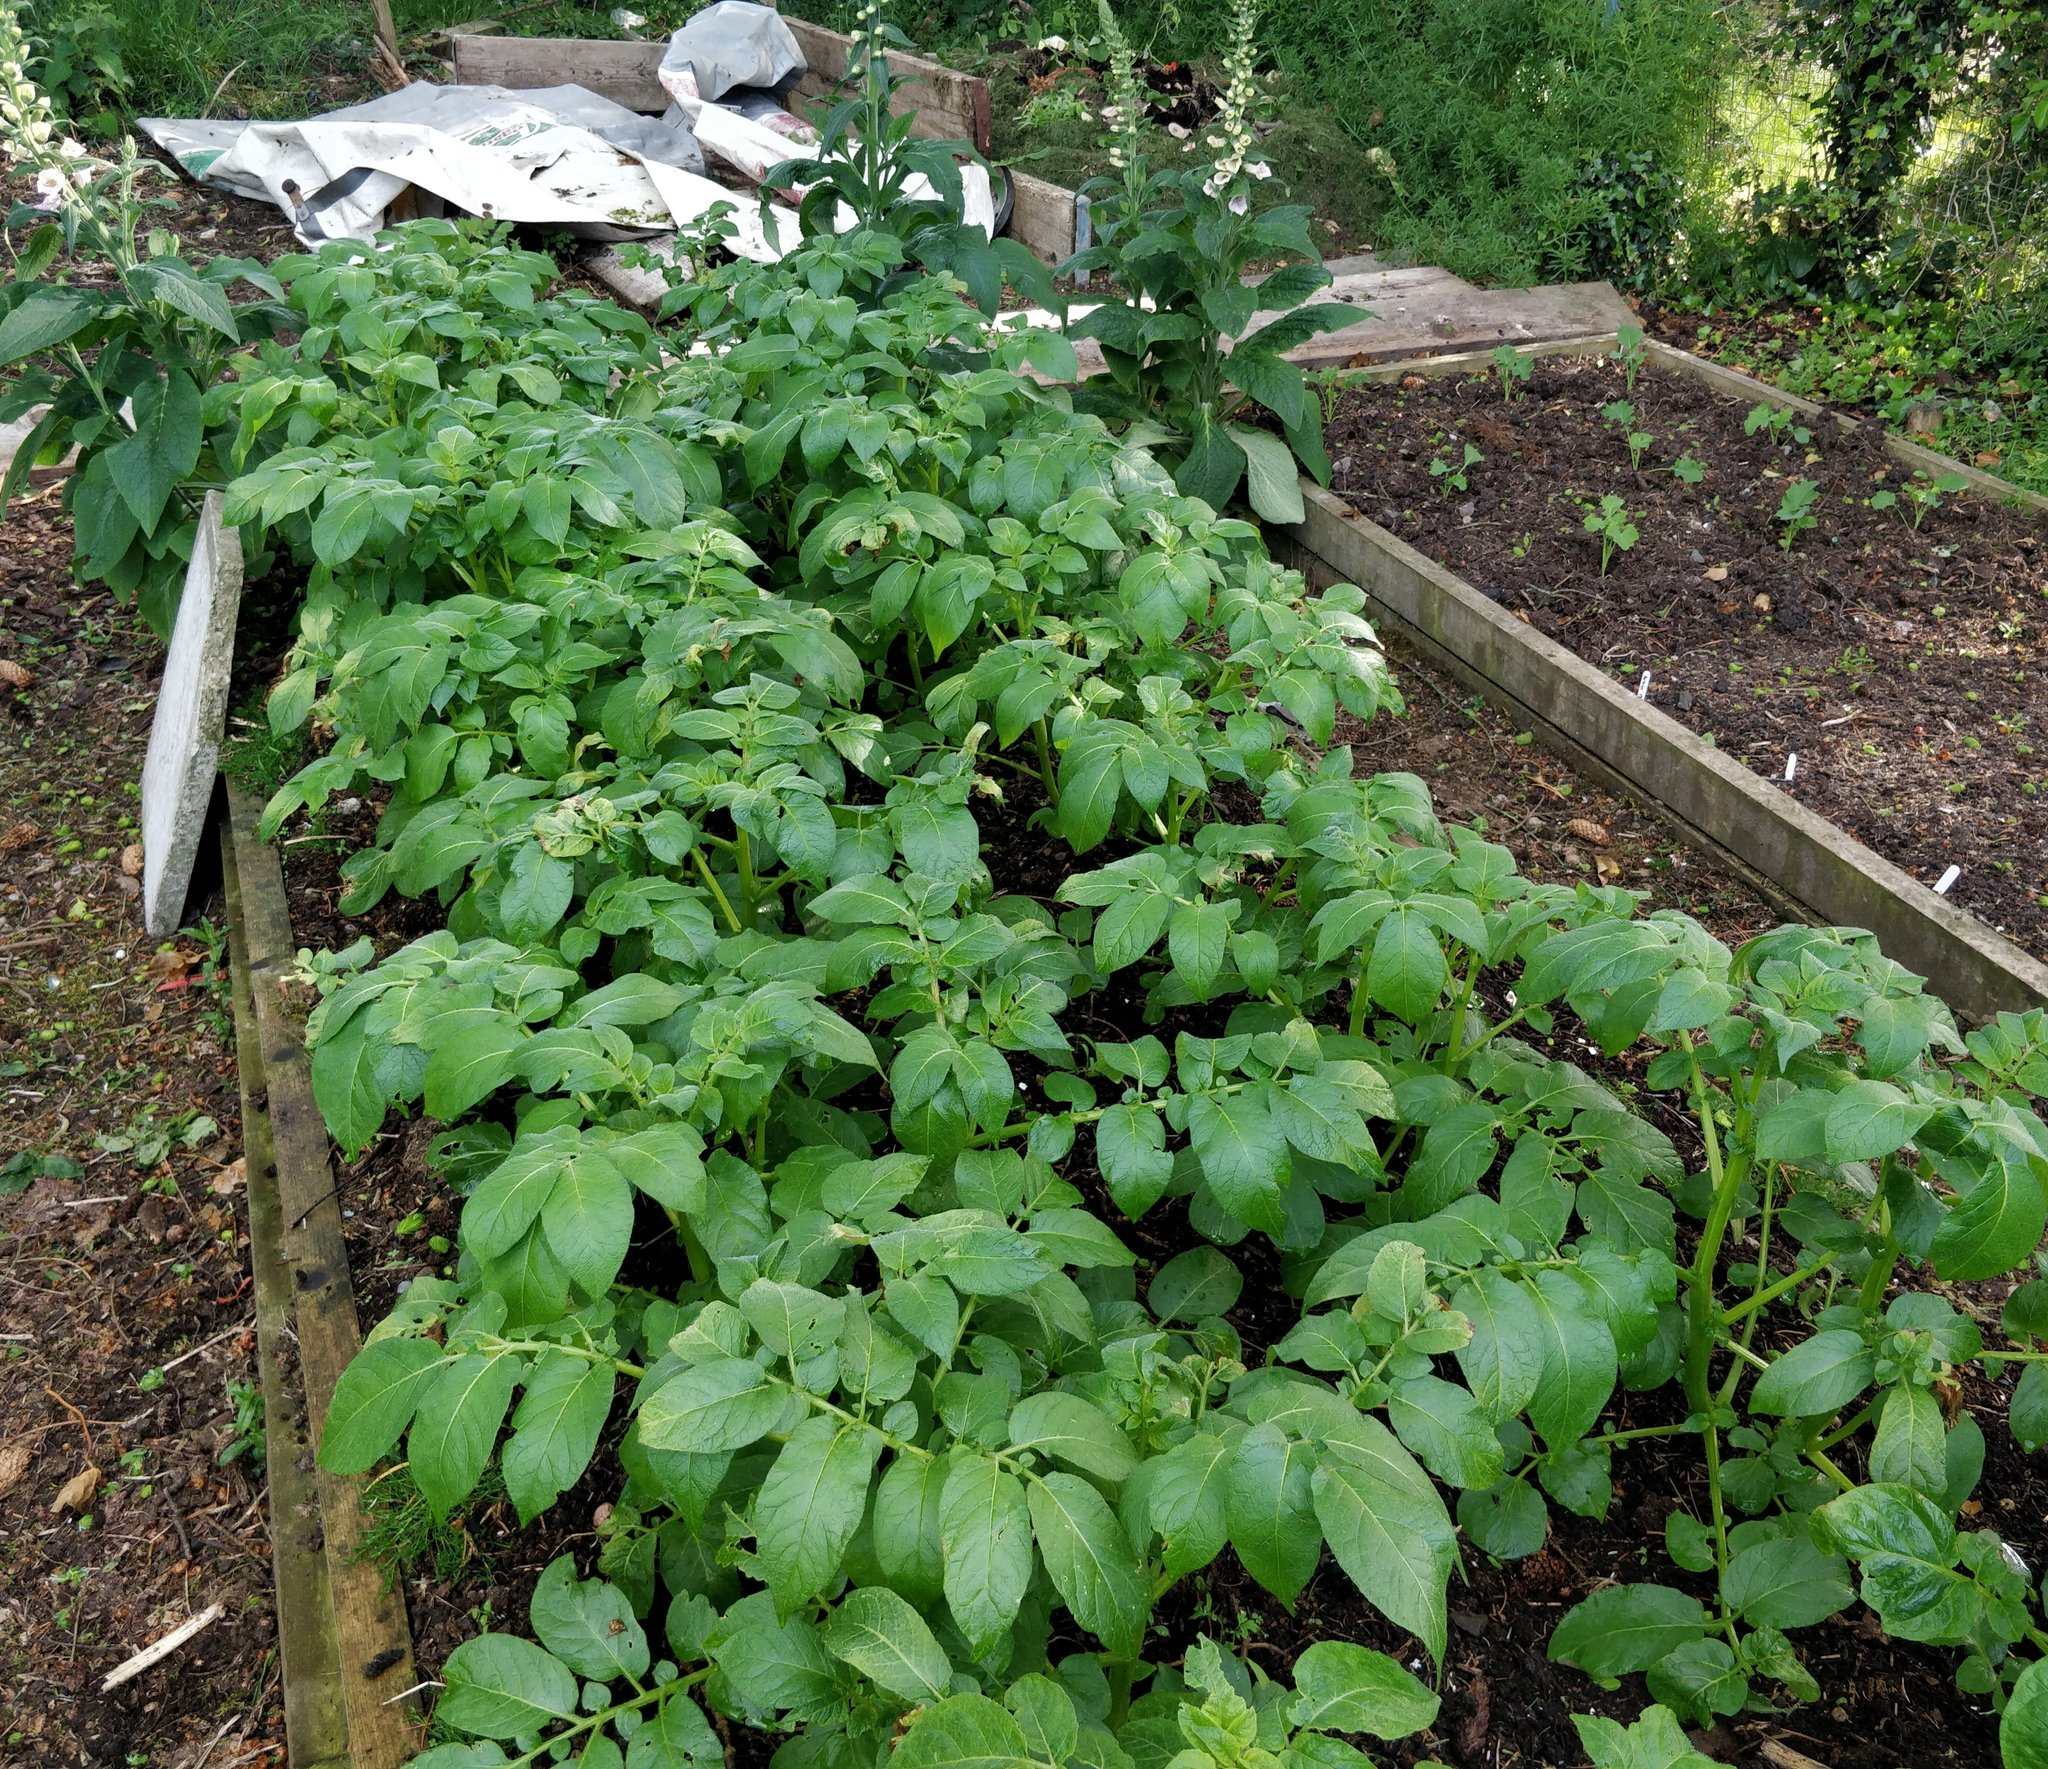 Potatoes on left planted slightly later (4/4) and avoided the worst of the frost. On the right planted earlier (23/3) hit hard but now recovering. A later planting has been of benefit here 🌱 #growyourown #gardening https://t.co/hcpXQlgIig